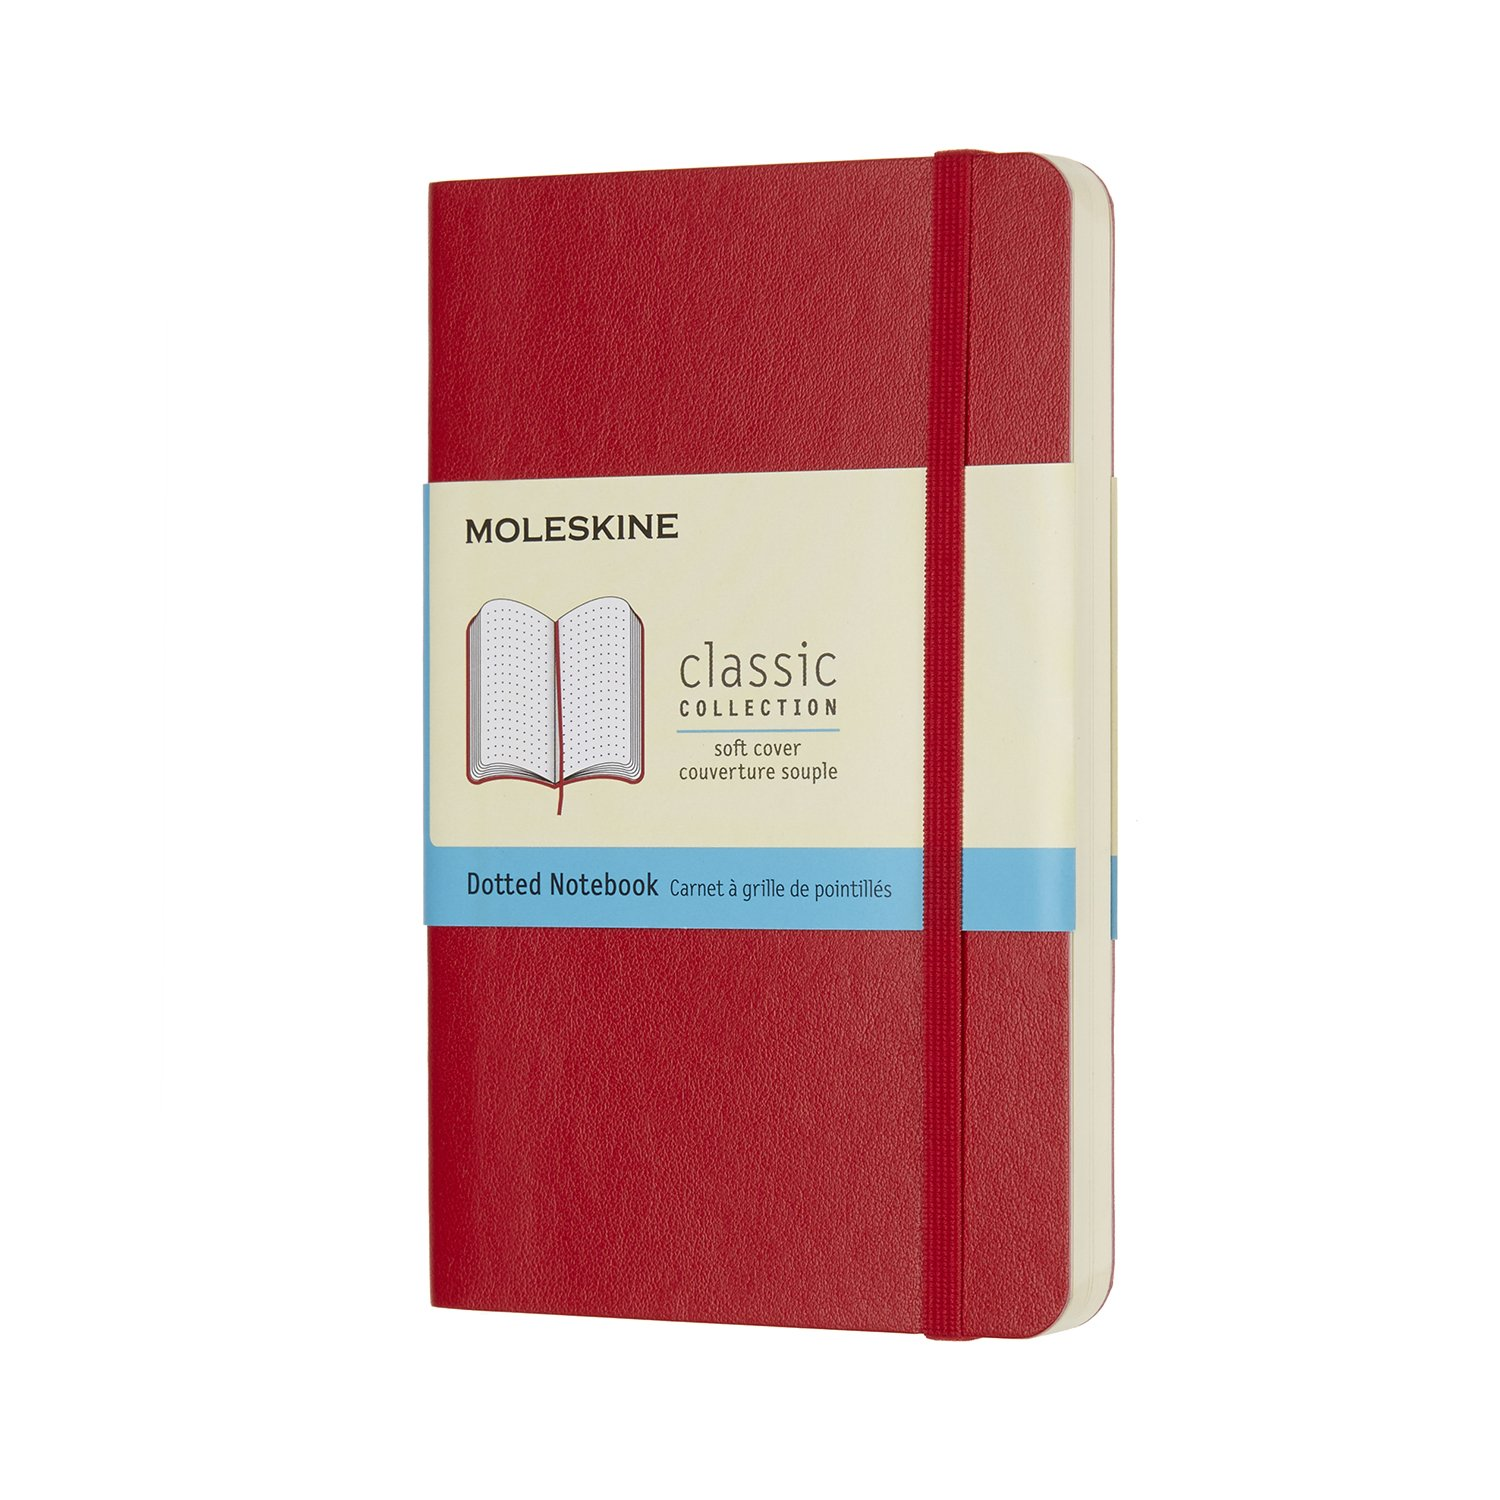 Moleskine Classic Notebook Pocket Dot Scarlet Red Softcover.